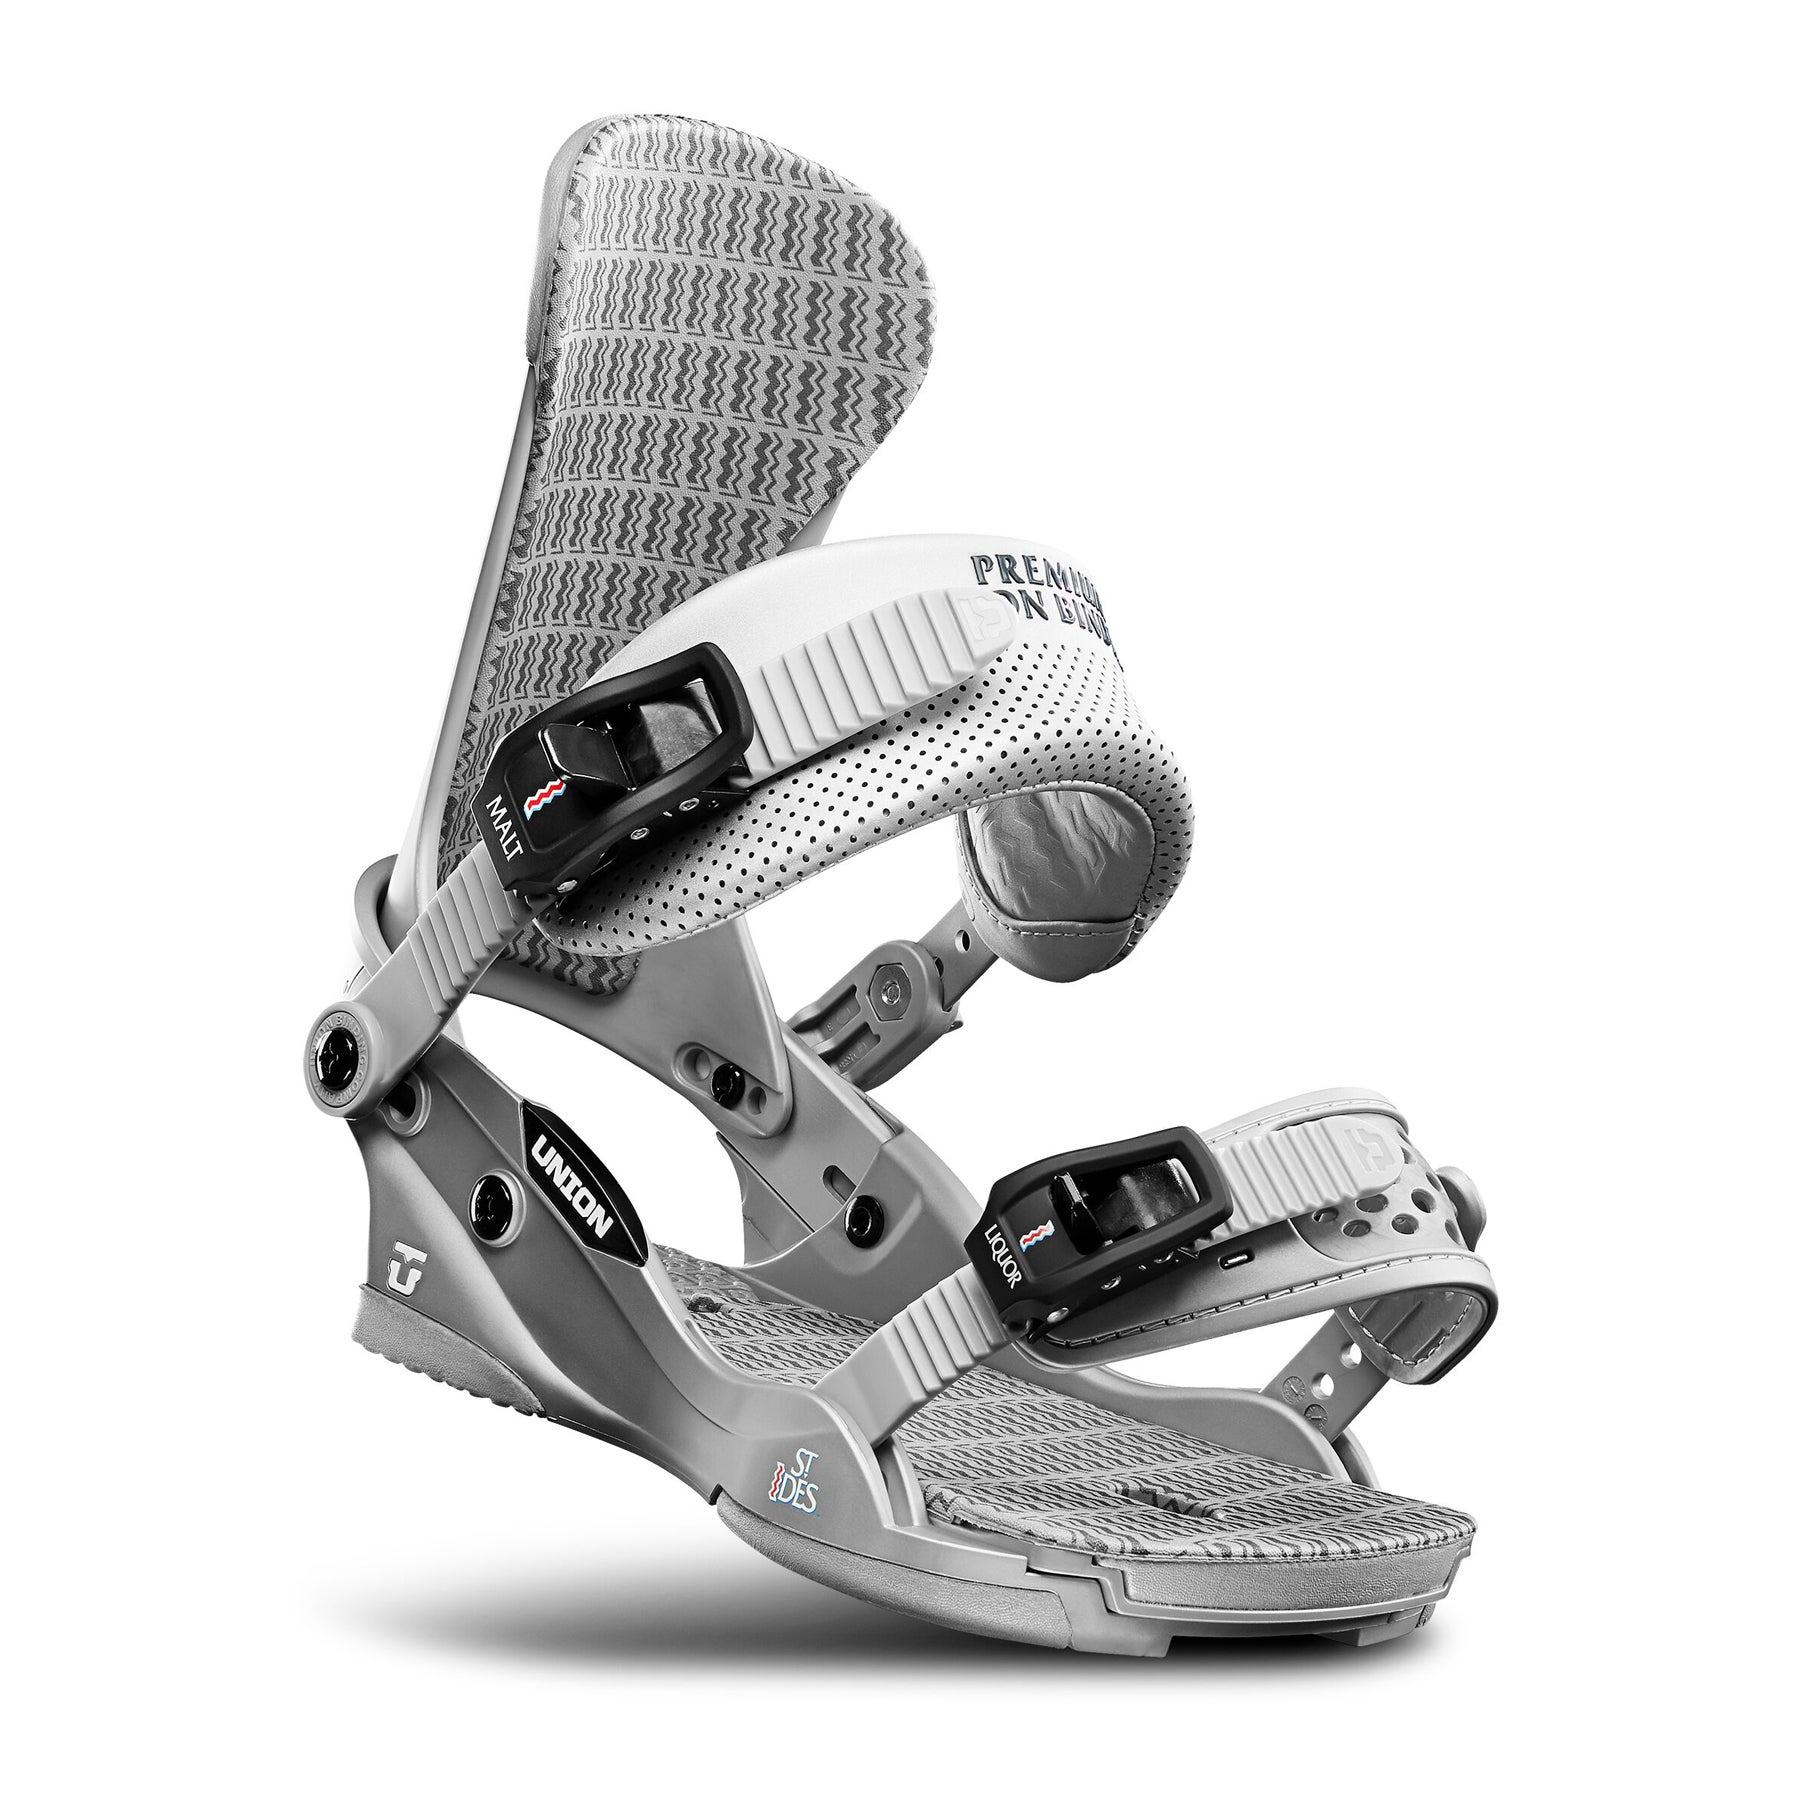 Snowboard Bindings Union St Ides - Silver